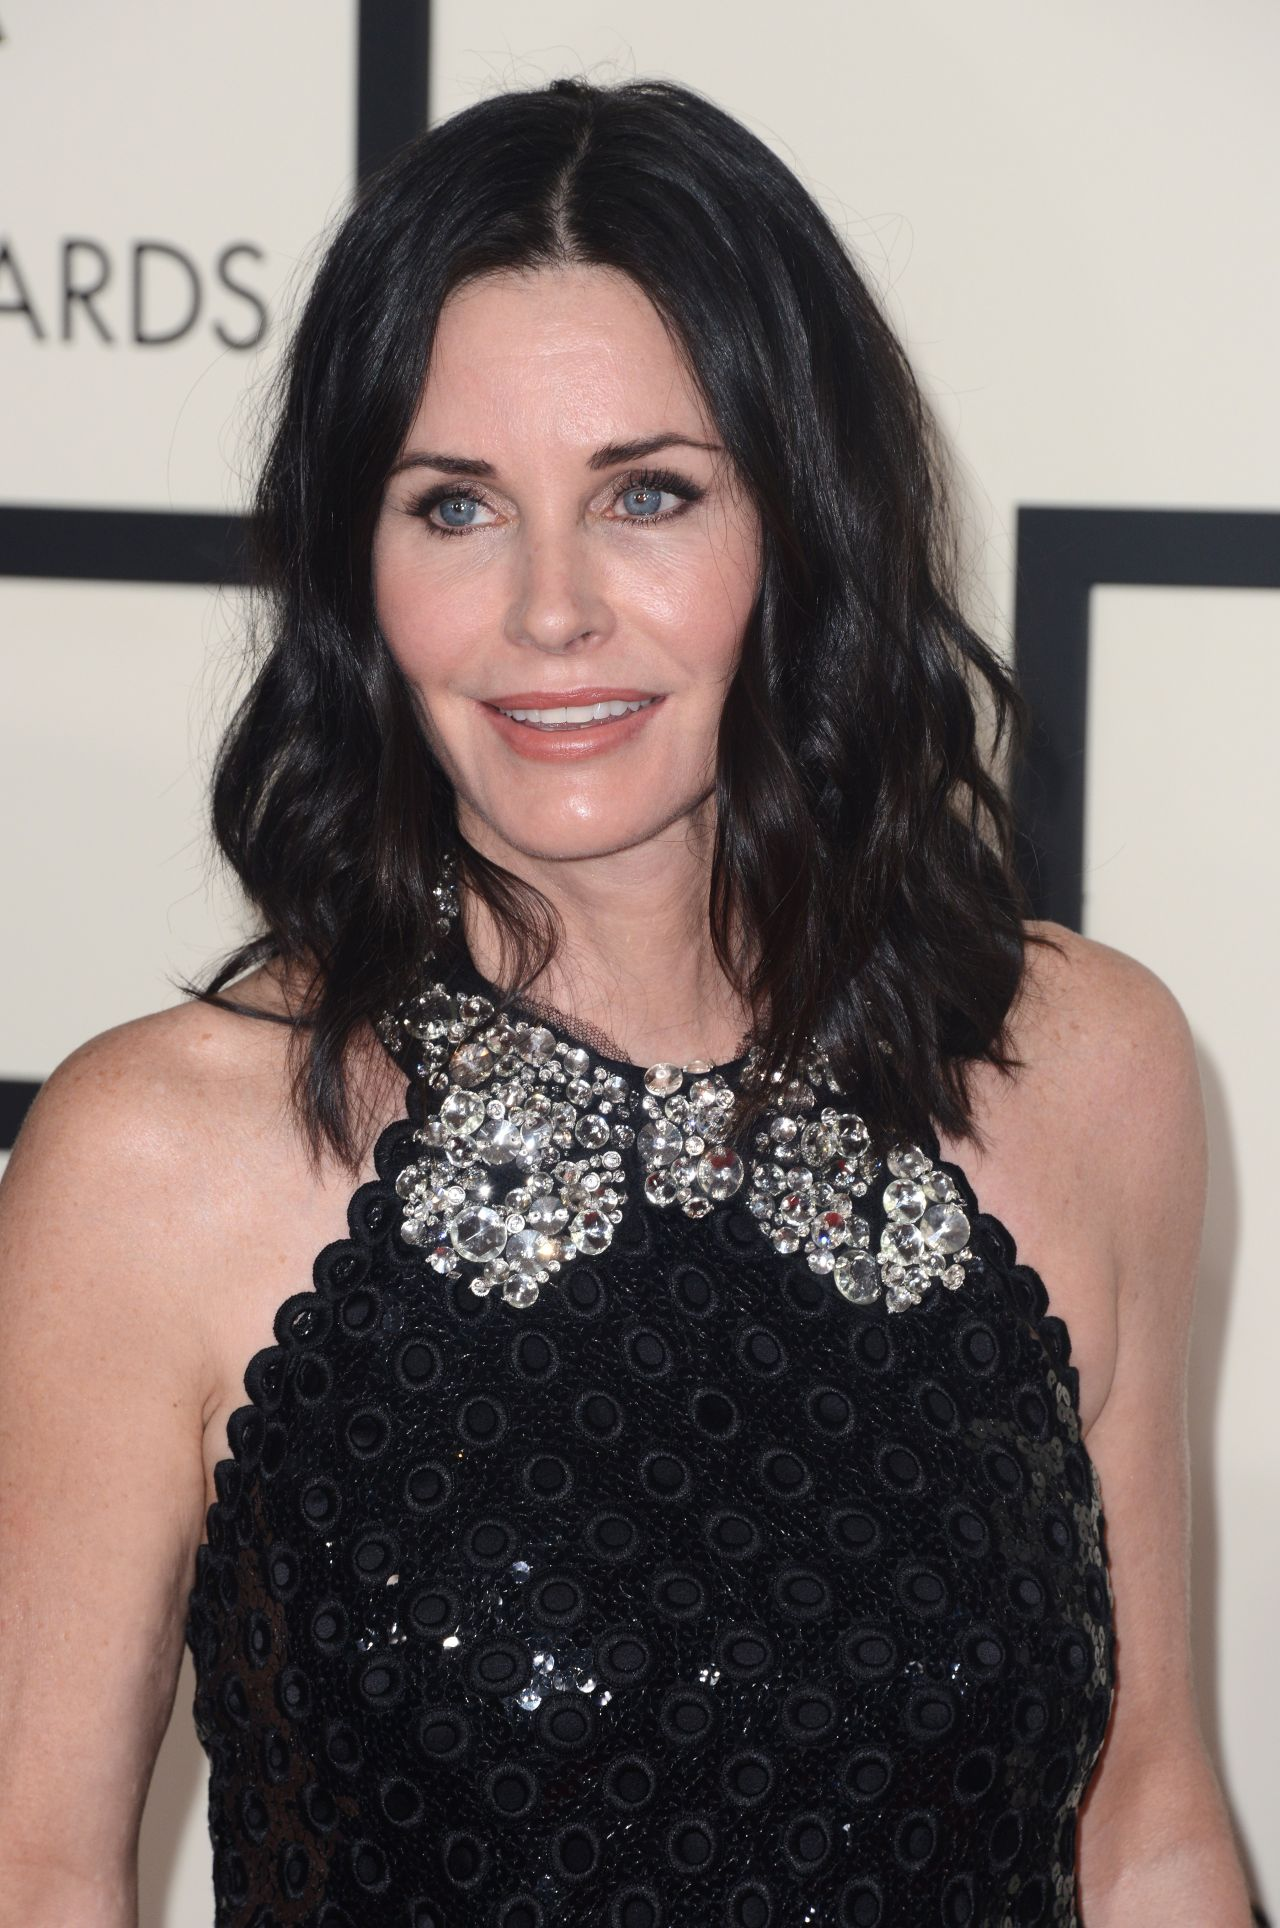 Courteney Cox Backgrounds